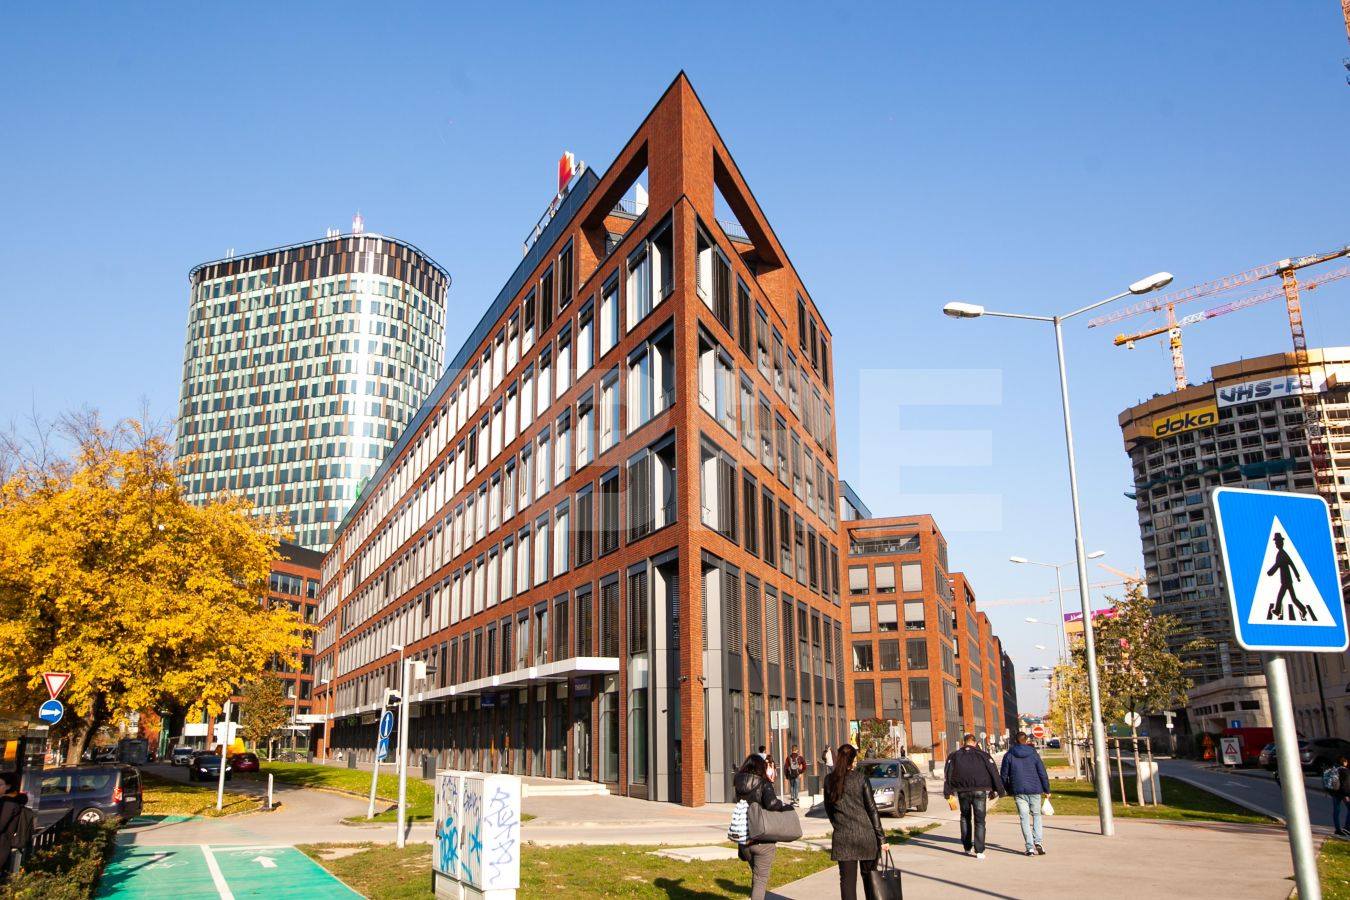 Twin City - A - Sublease, Bratislava - Staré Mesto | Offices for rent by CBRE | 1